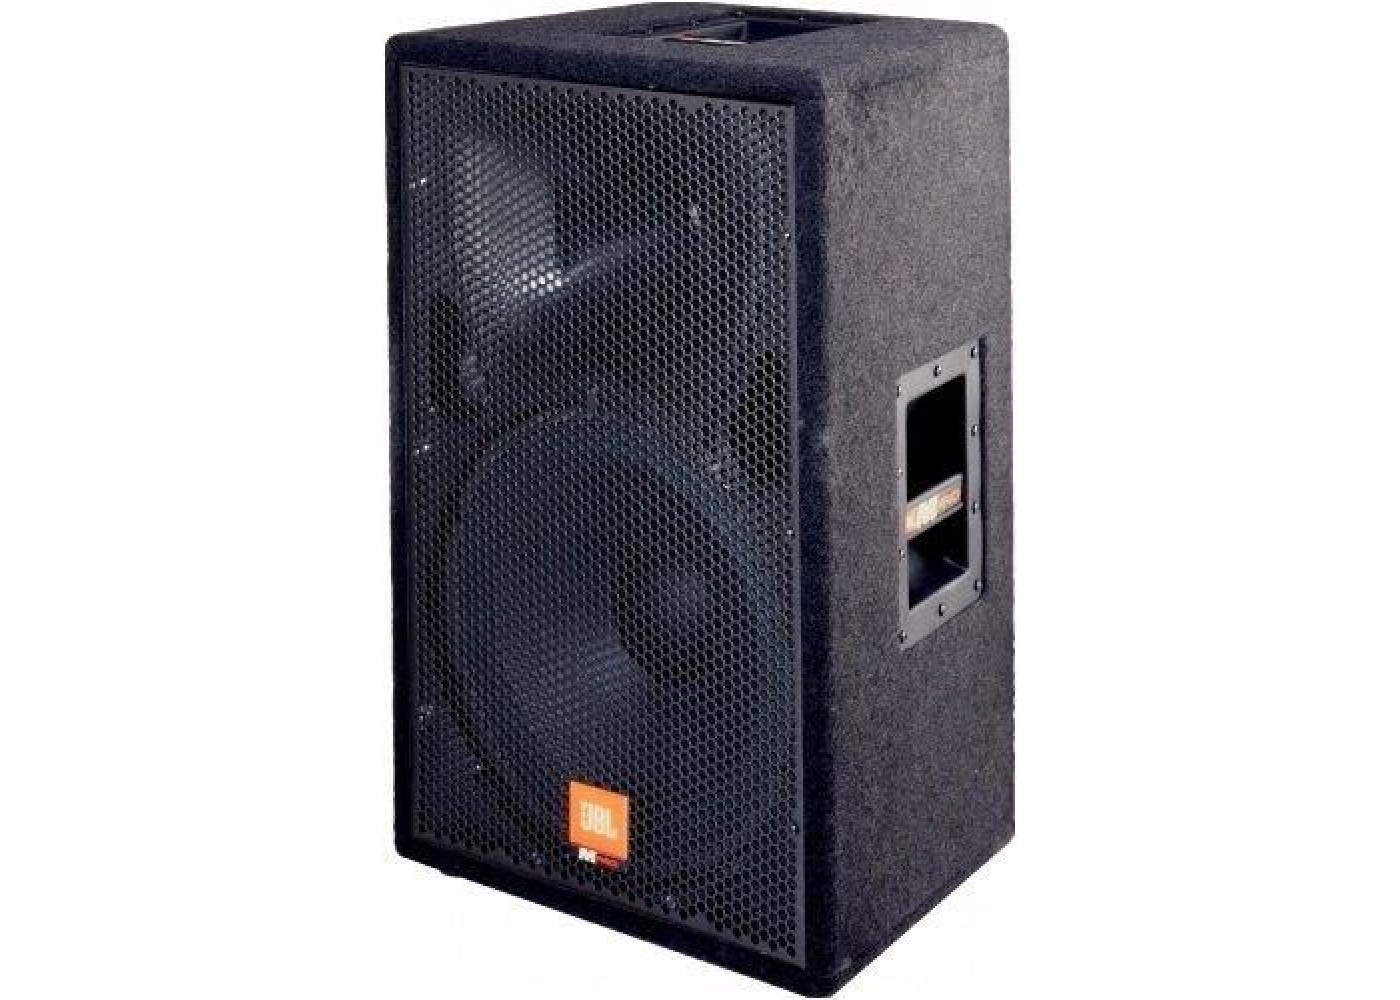 Live Sound Speakers : nice used pair of jbl mpro model mp215 2 way live sound pa speakers ~ Russianpoet.info Haus und Dekorationen